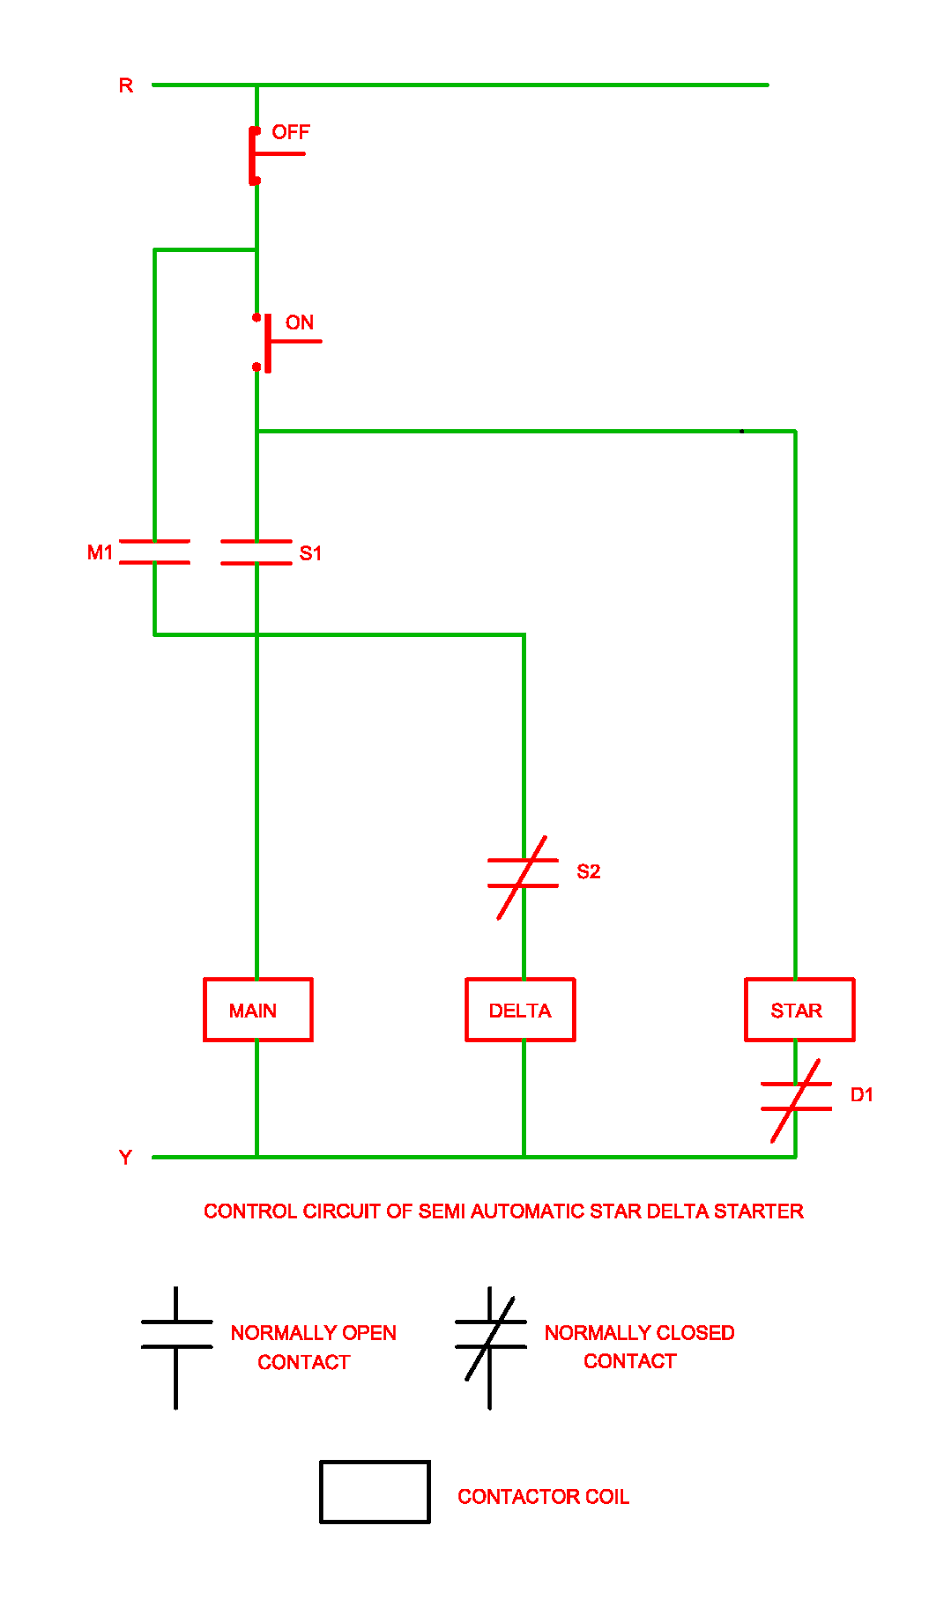 Control circuit of semi automatic star delta starter.pdf